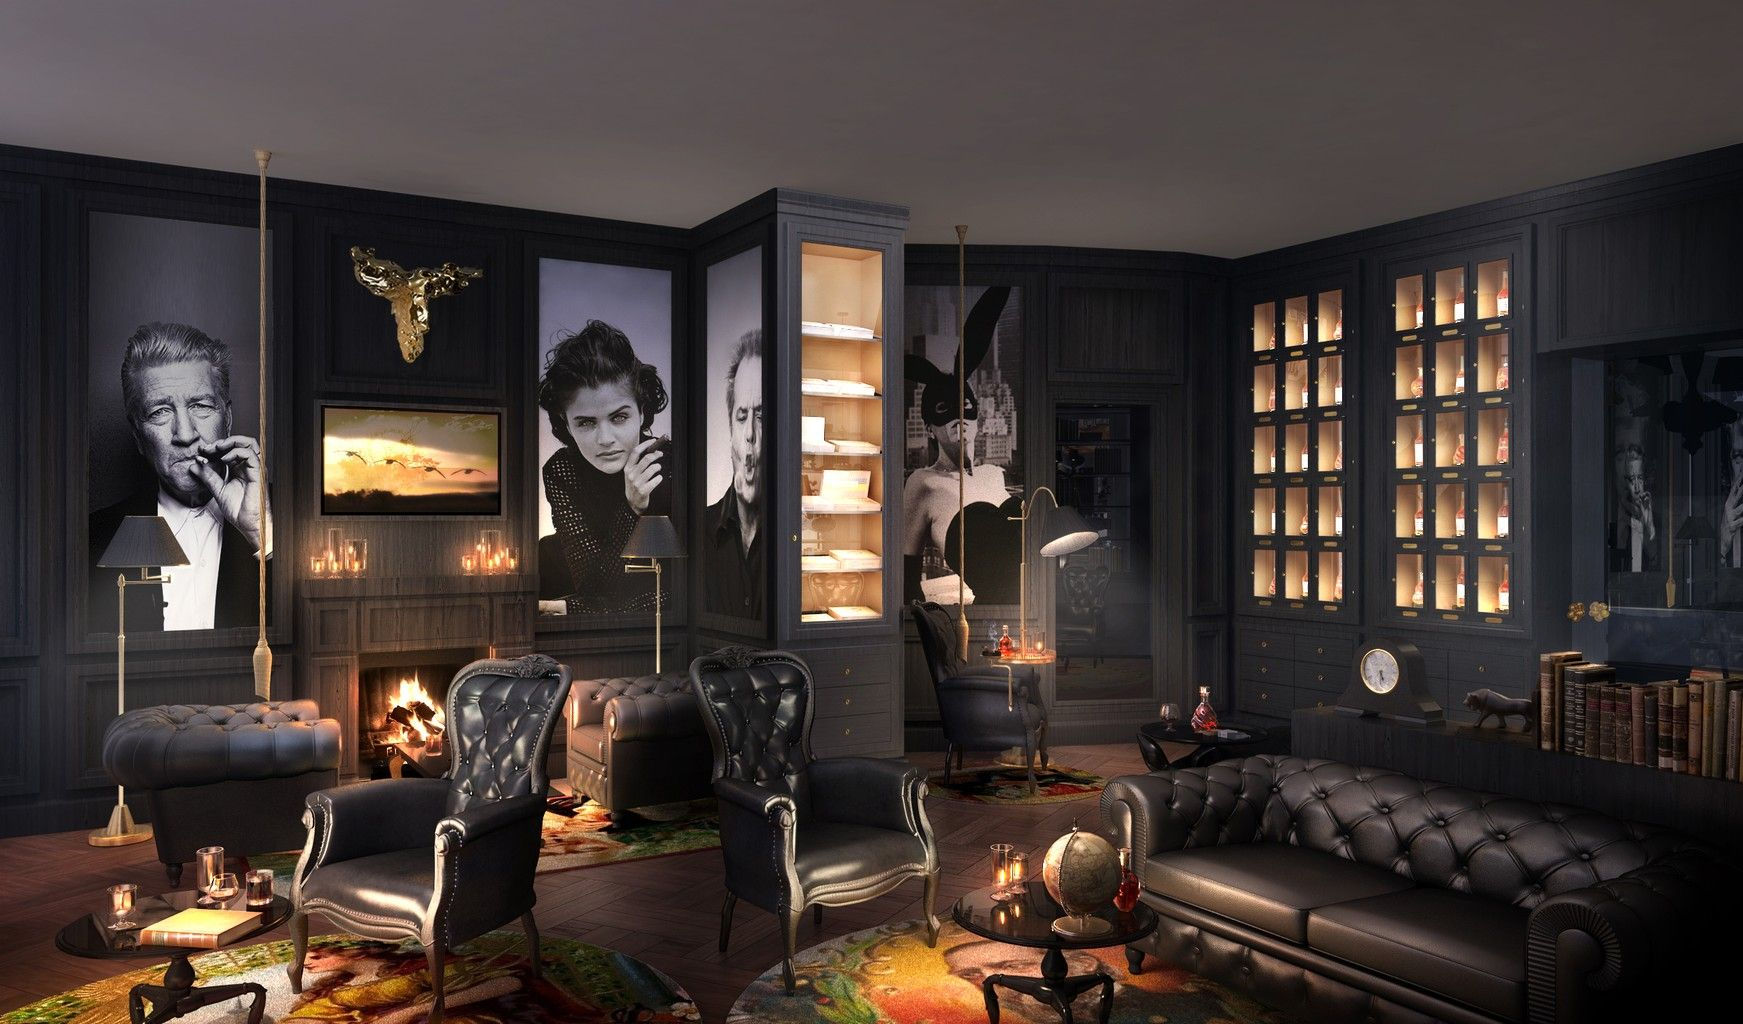 foto smokers lounge hotel m bel pinterest la maison hommes et maisons. Black Bedroom Furniture Sets. Home Design Ideas